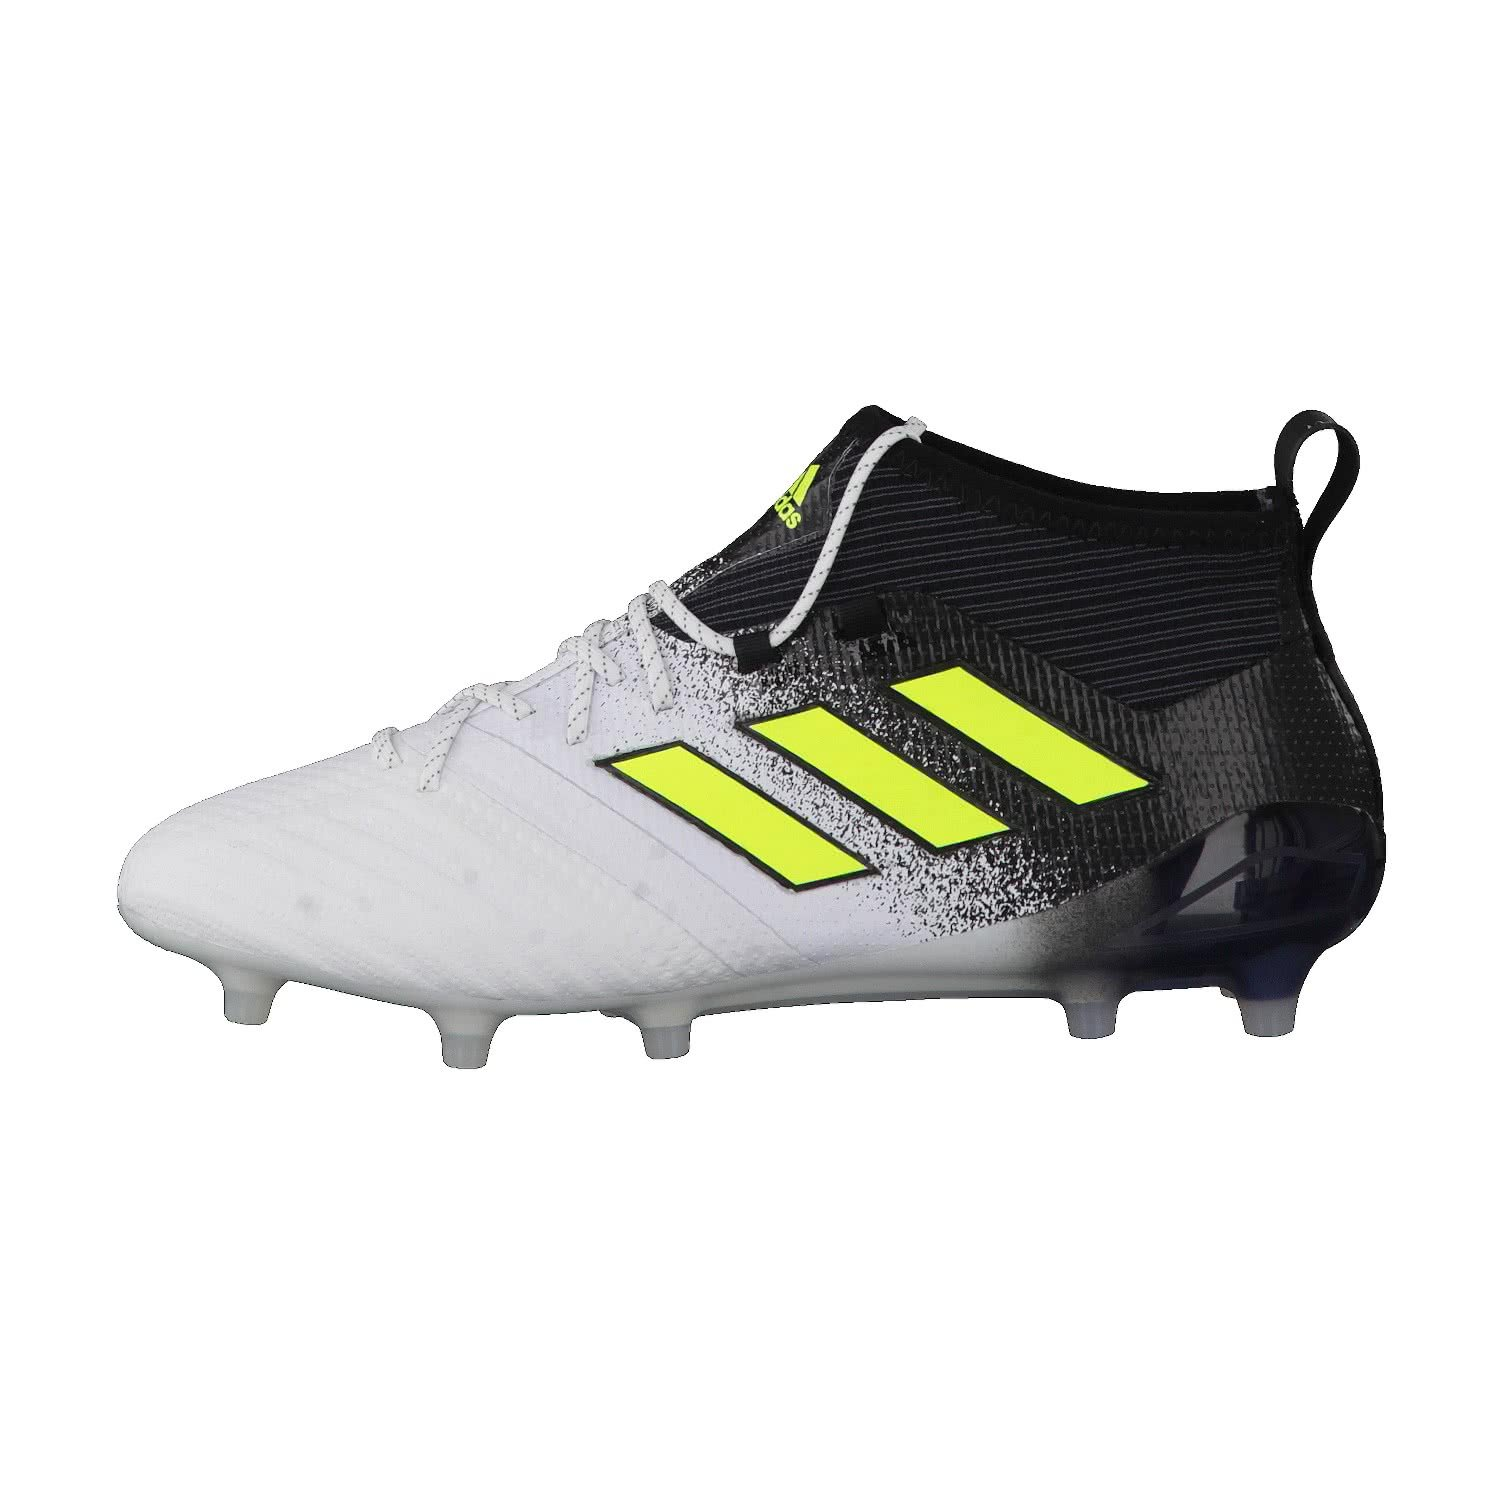 it Ace E Fg Borse Amazon Da Uomo Adidas Scarpe Calcio 1 17 FT6qf1x1wU